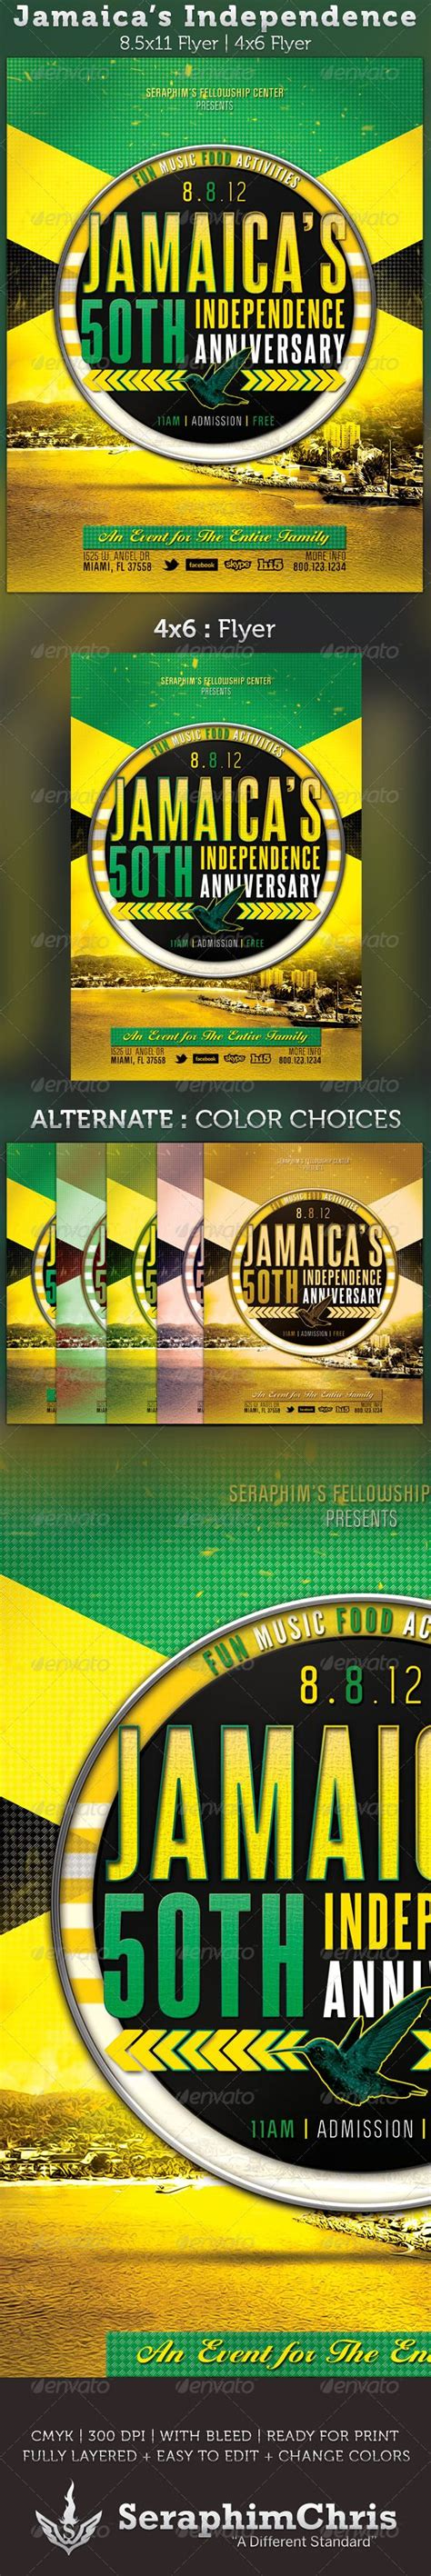 Best 25 Jamaican Independence Day Ideas On Pinterest Jamaican Independence Jamaica Culture Jamaican Flyer Templates